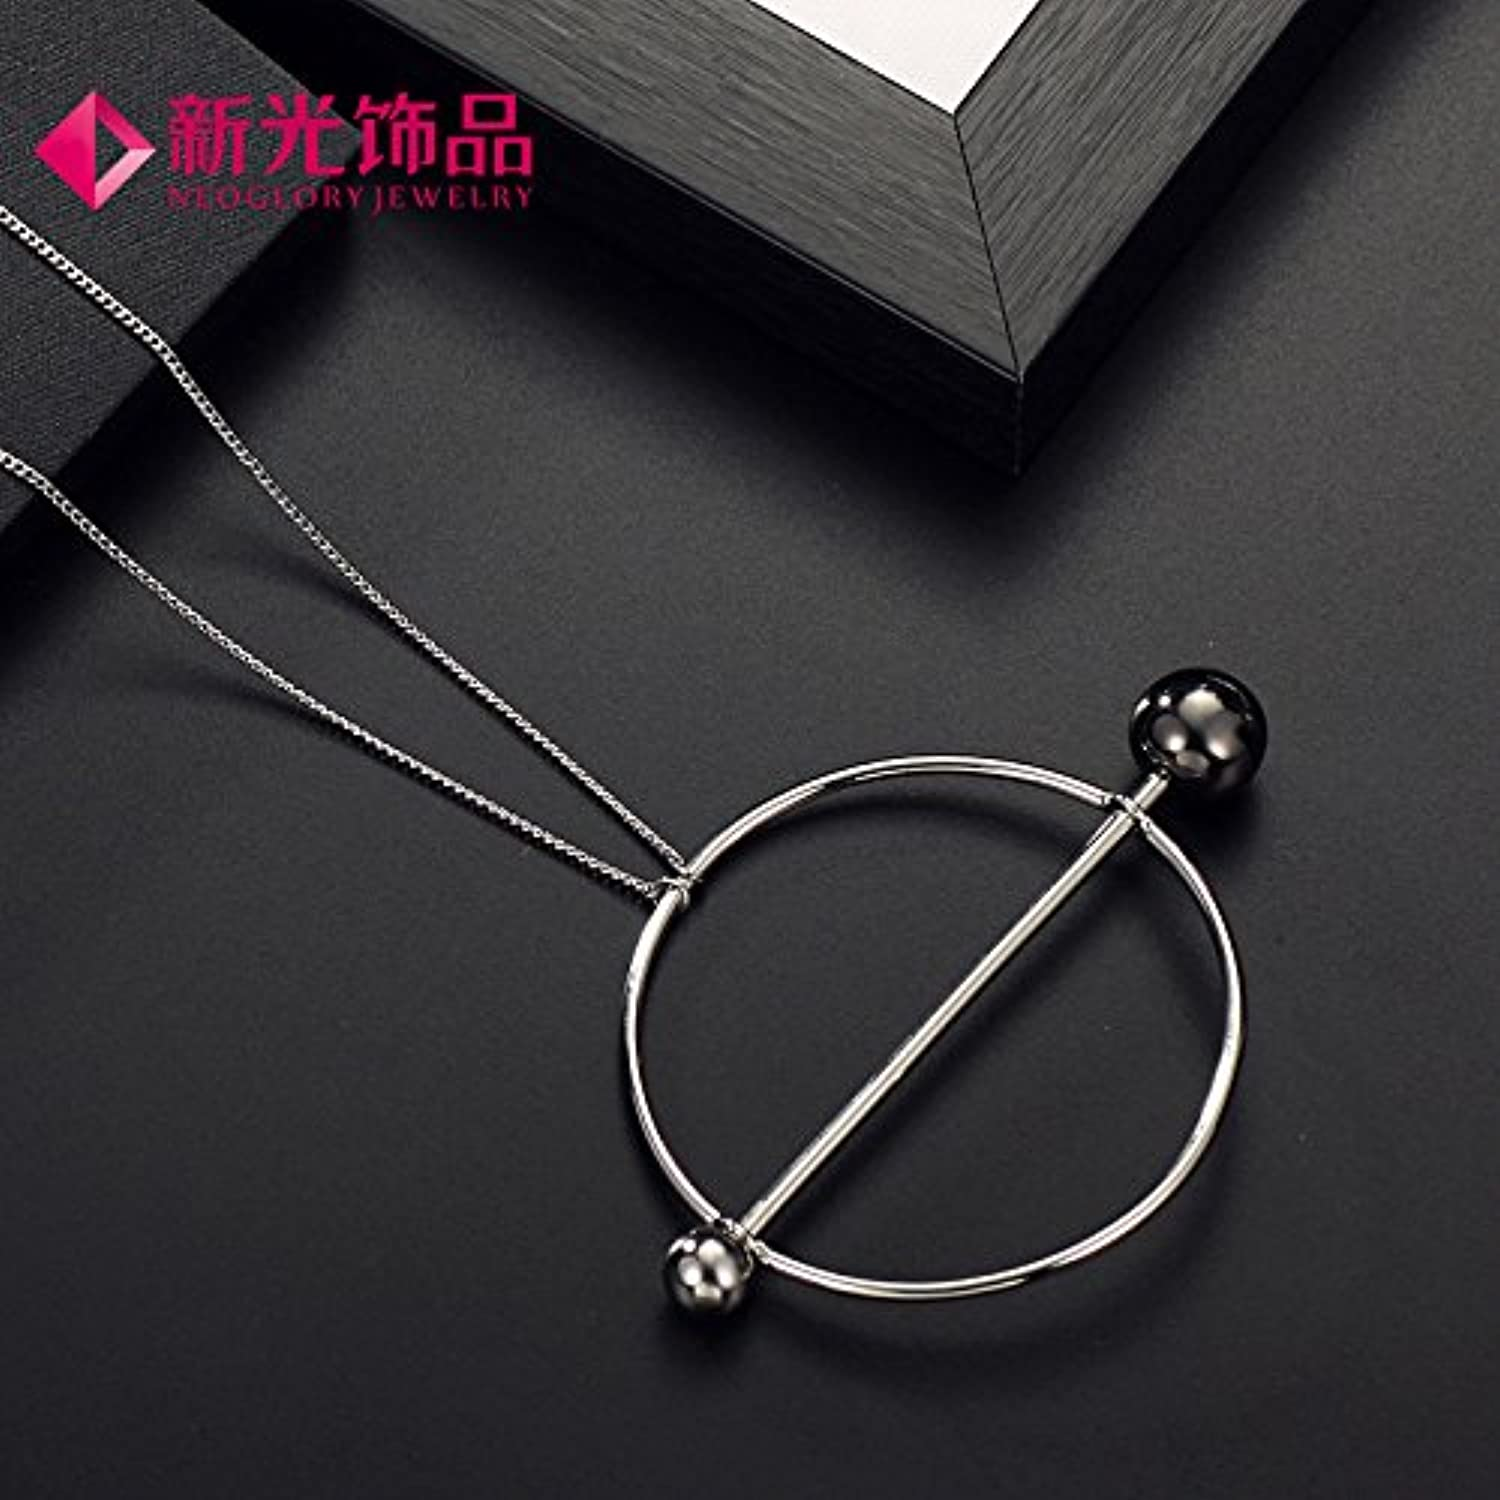 Neoglory Circle Round Metal Ball Necklace Pendant Long Chain Alloy Plating Environmental Sweater Chain Women Girls Tide Products